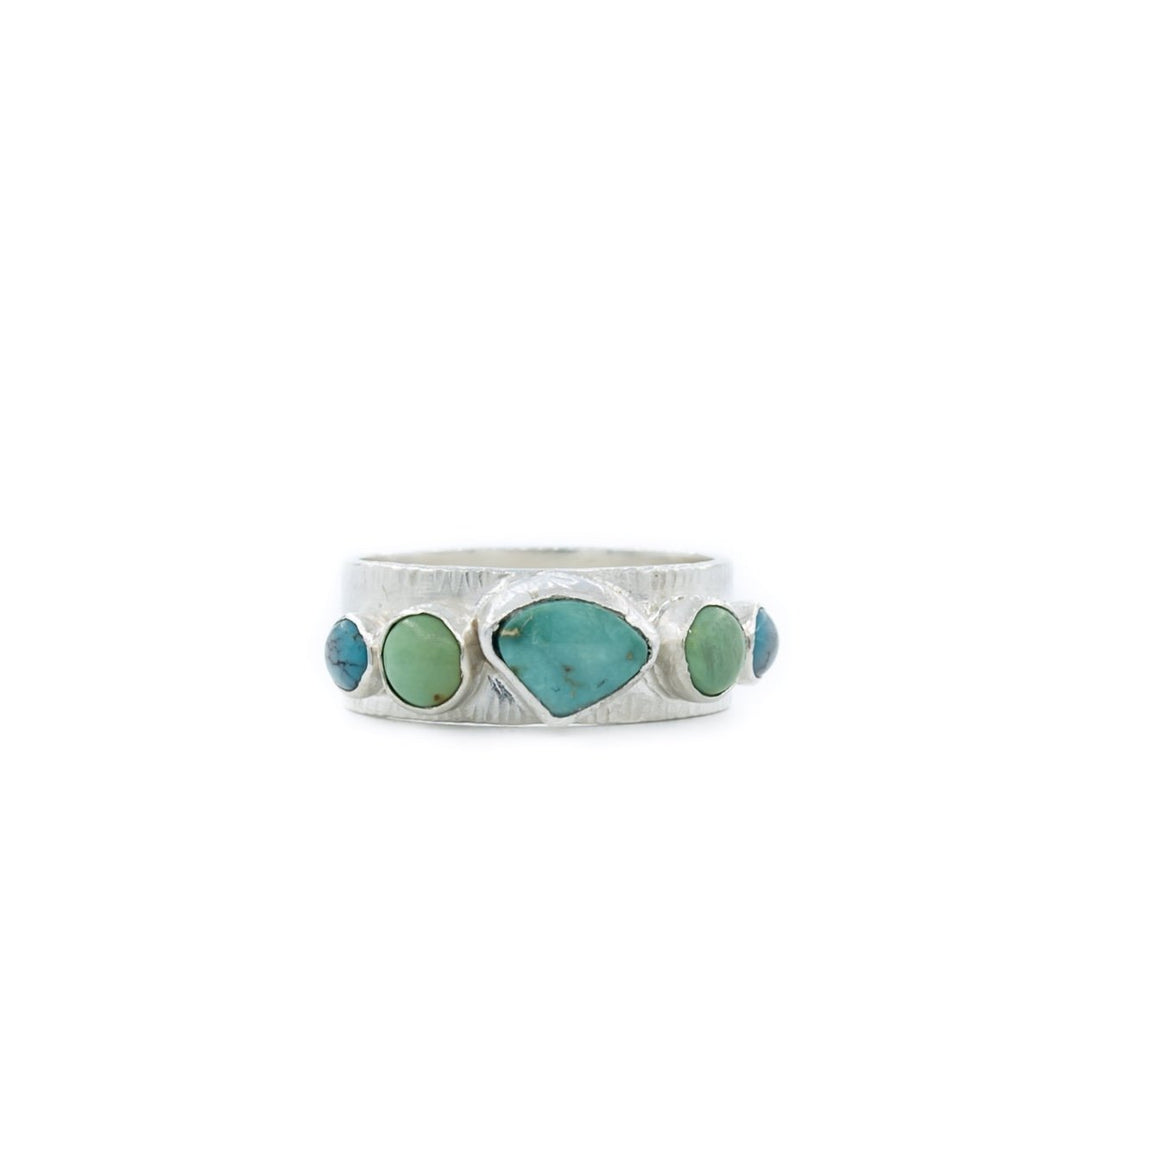 5 Stone Wedding Band Style Ring in Turquoise and Silver by Original Sin Jewelry